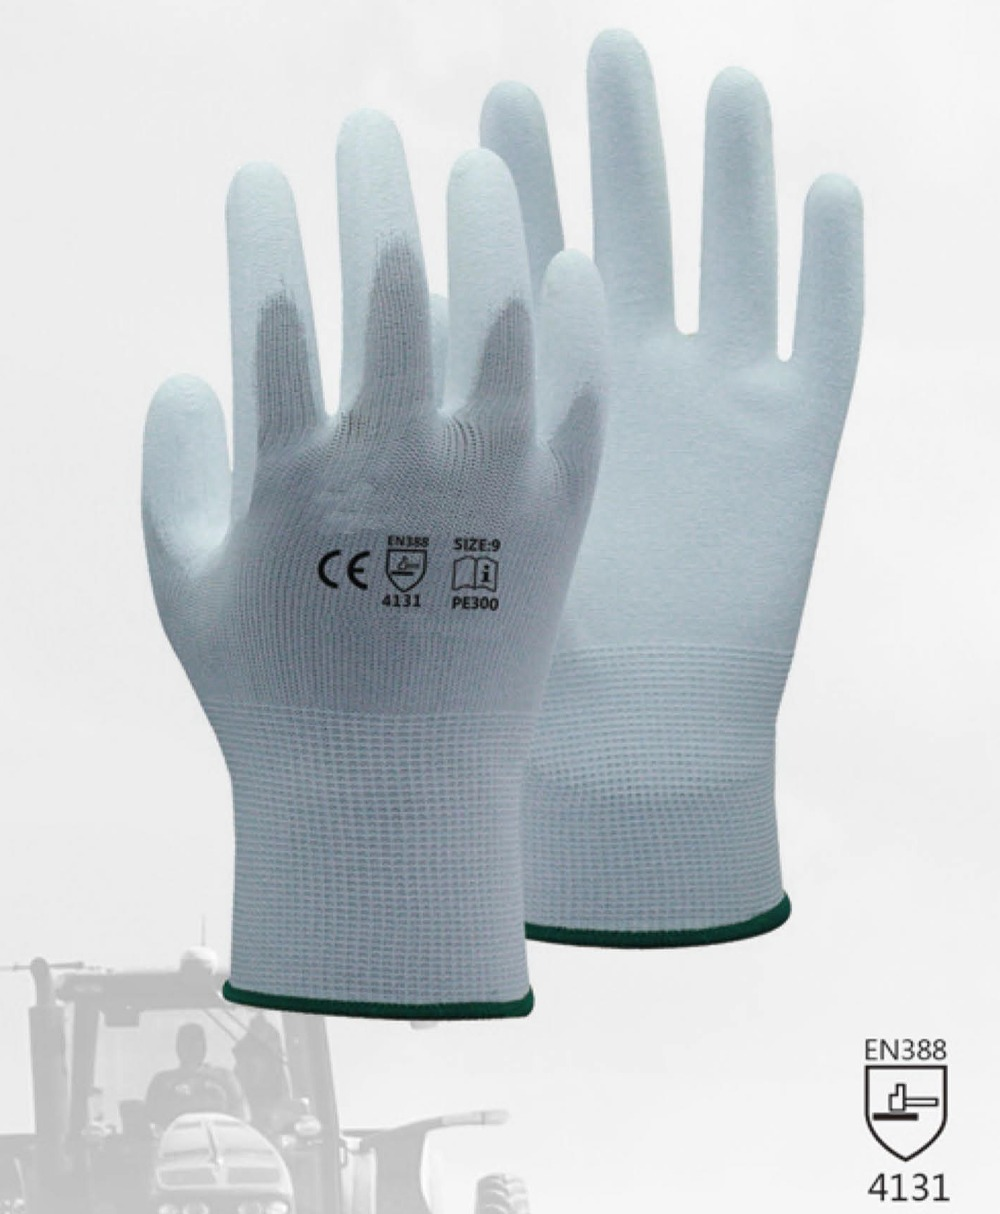 Sarung Tangan Safety ESD Anti-statis Glove White Nylon Glove Dengan PU Polyurethane Palm Dicelup Anti Static Work Glove